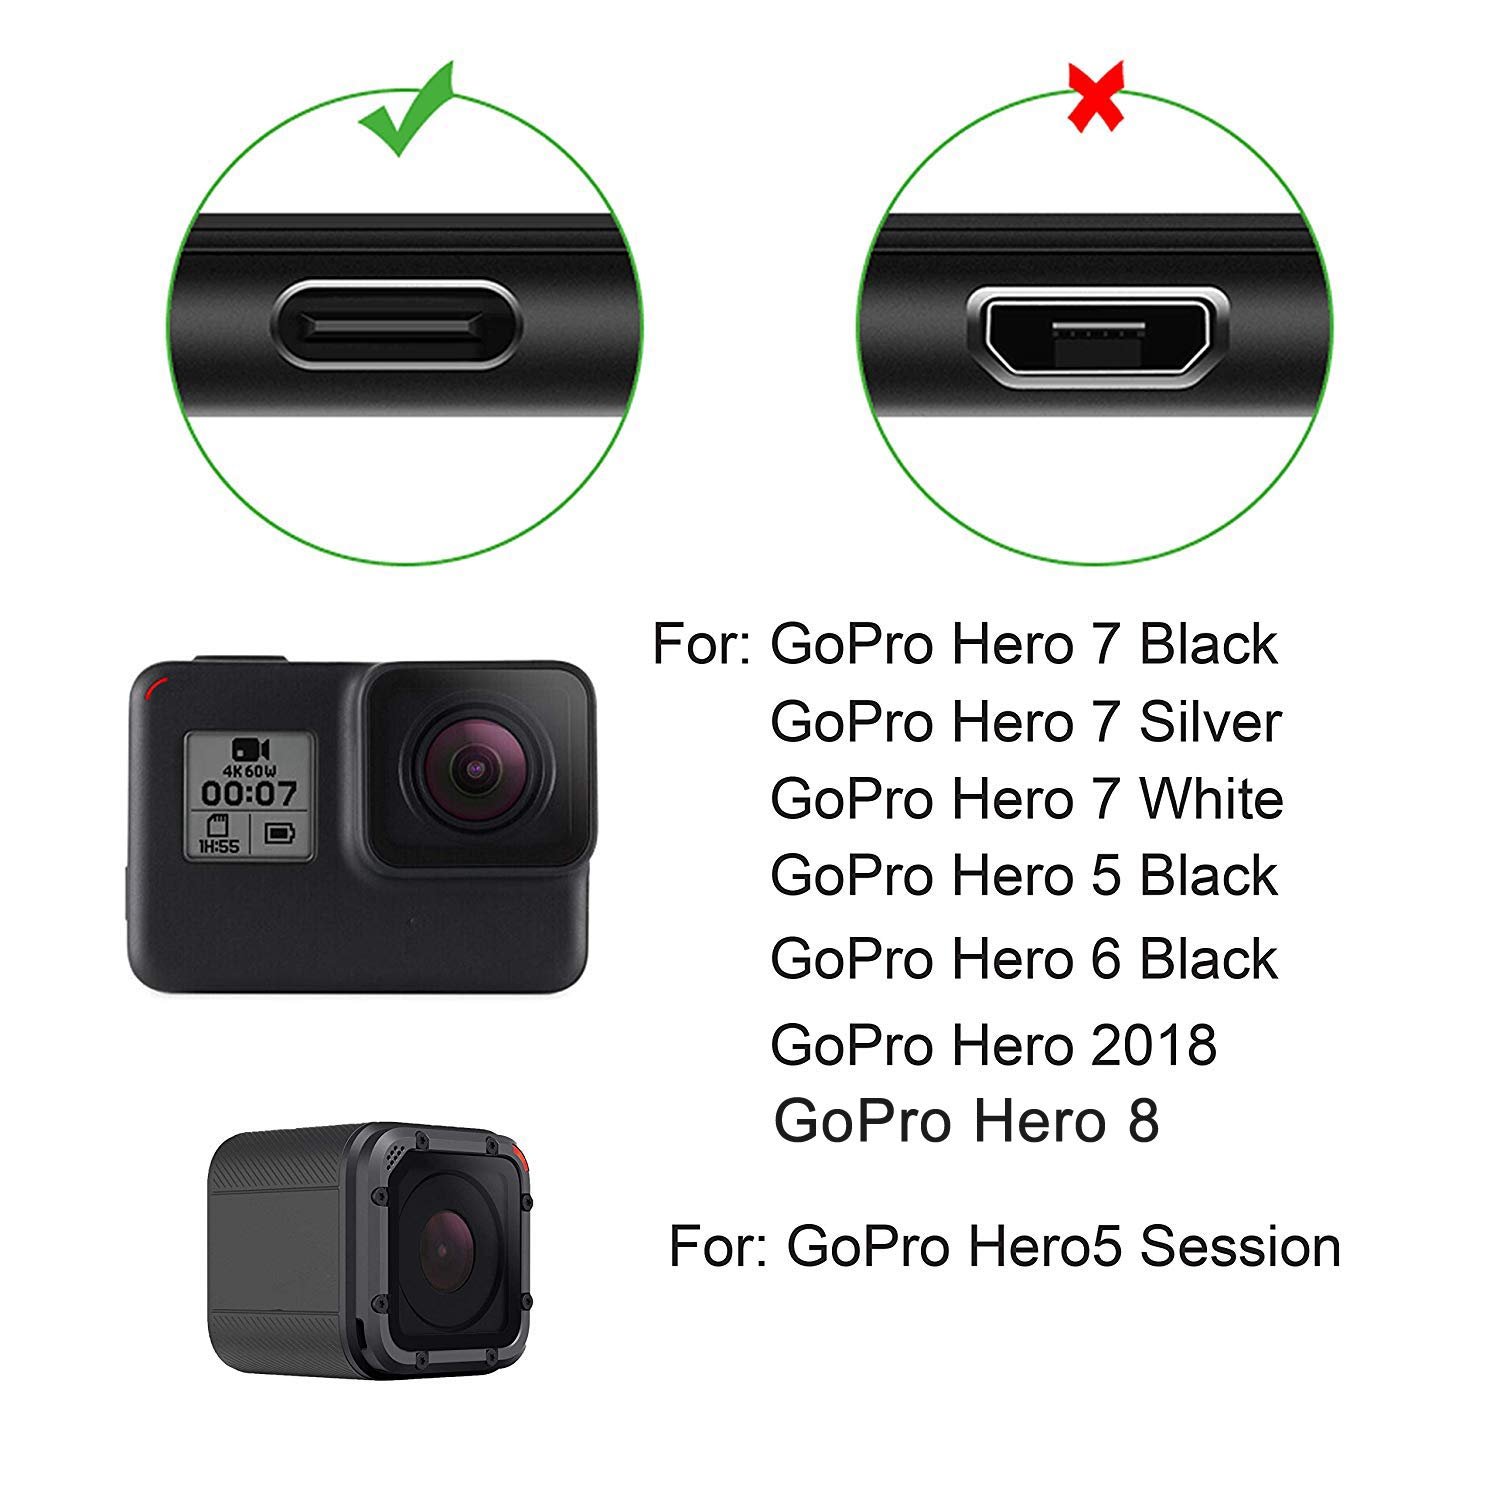 Suptig Charging Cable Type-C Charging Cable For Gopro Hero 8 Hero 7 Black Gopro Hero 7 Silver Gopro Hero 7 White Gopro Hero 6 Black Gopro Hero 5 Black Gopro Hero5 Session Gopro Hero 2018 2 Pack(Black) 713V6C4vY2L